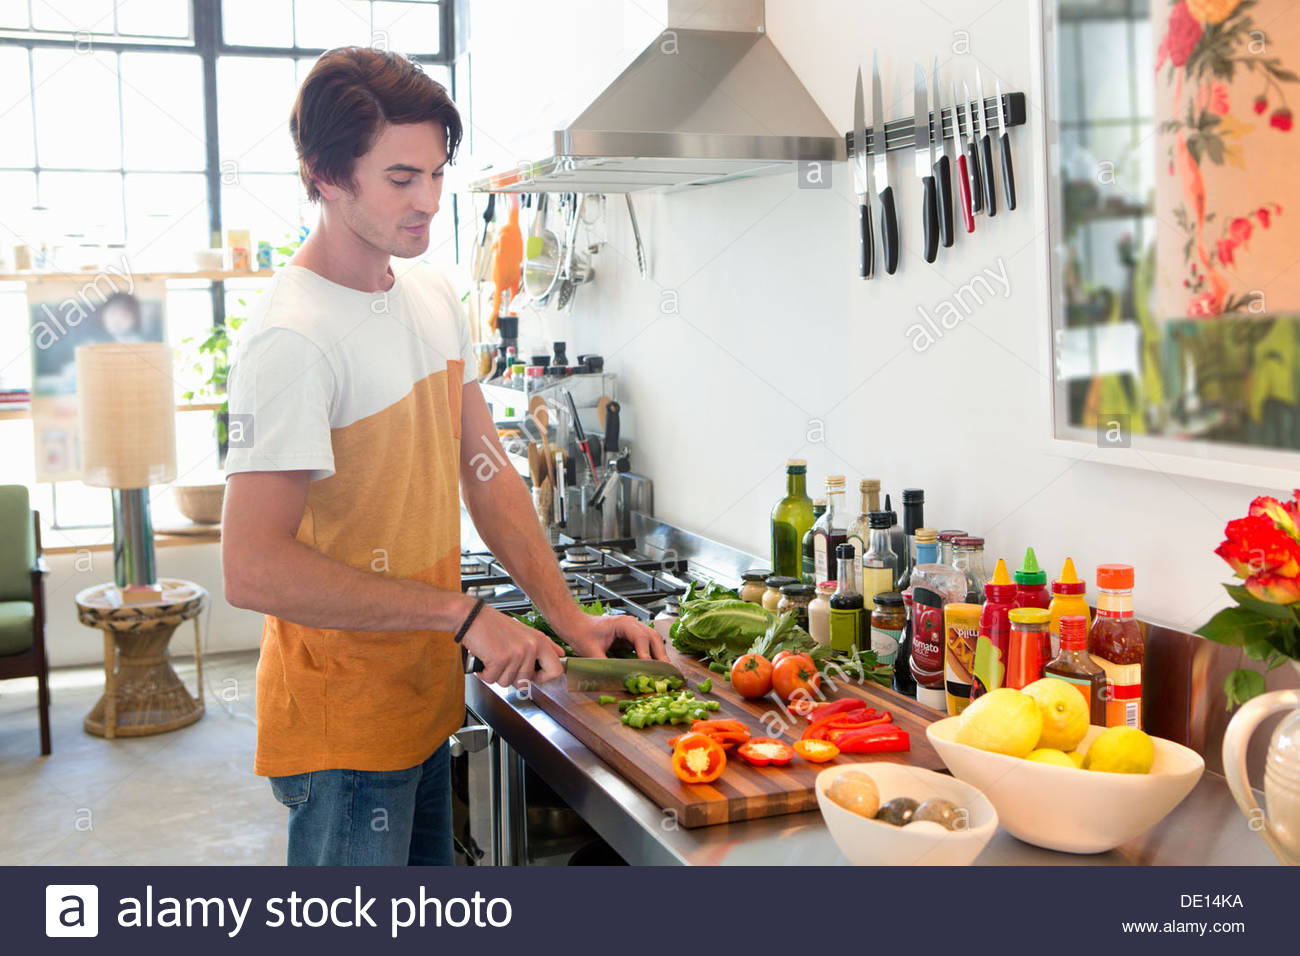 Man chopping vegetables in kitchen - Stock Image